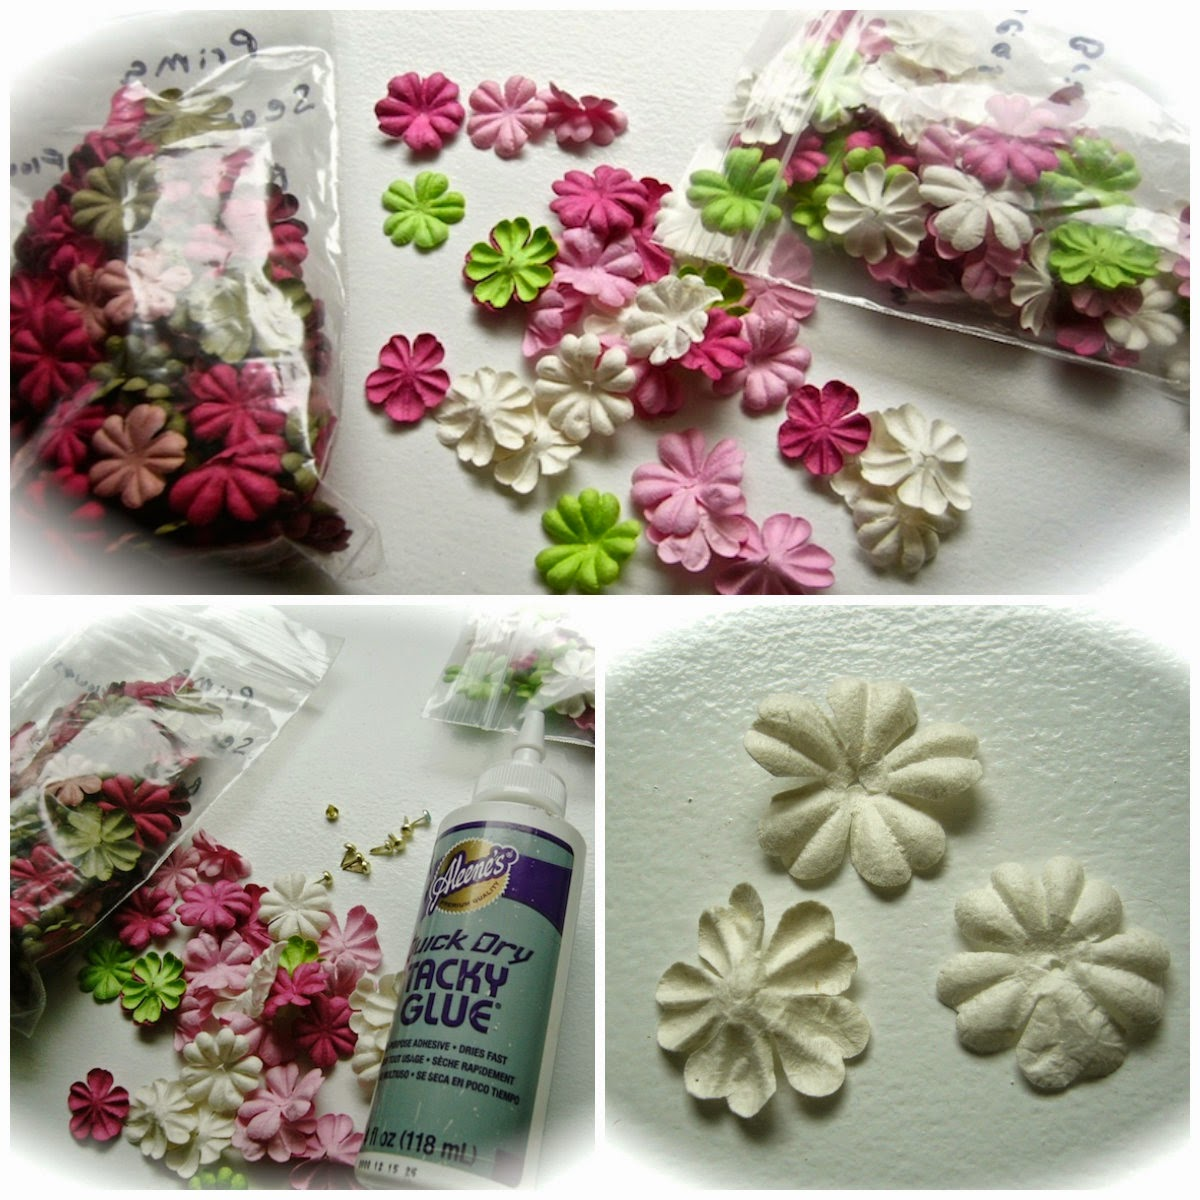 How to scrapbook flowers - Let S Make Inexpensive Dimensional Flowers That Can Be Added To Scrapbook Pages Cards Frames Papier Mache And Other Projects Using What Is Already In